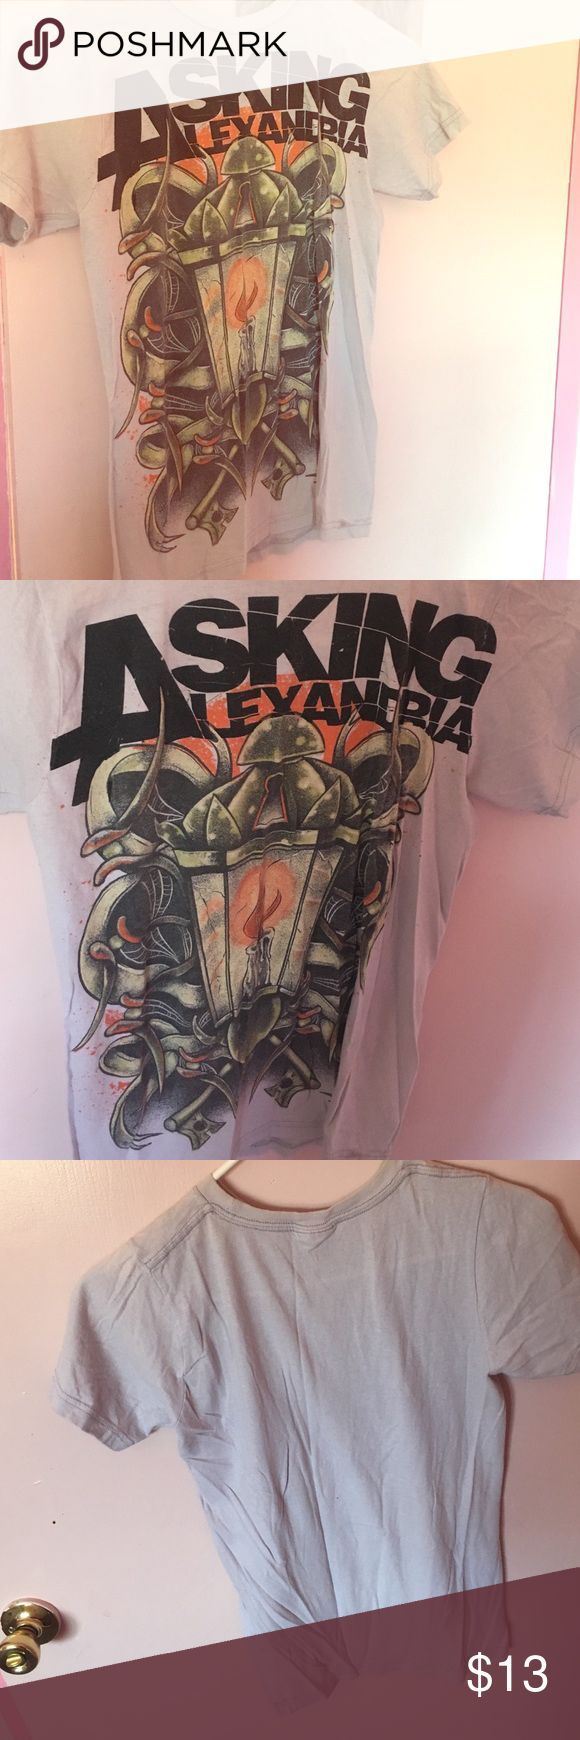 A Hot Topic Asking Alexandria Band Tee This is an original Hot Topic Extra Small band tee. 100% cotton. If your a fan, or just want to complete a couple rocker outfits this is the  gray tee for you. It's a bit wrinkly but other than that good condition at an inexpensive price. The  picture has the bands name on it in black lettering. The middle picture is an antique lamp that has a Melted candle in the middle. The sides are covered in drawings of cob webs, keys and more intricate designs…